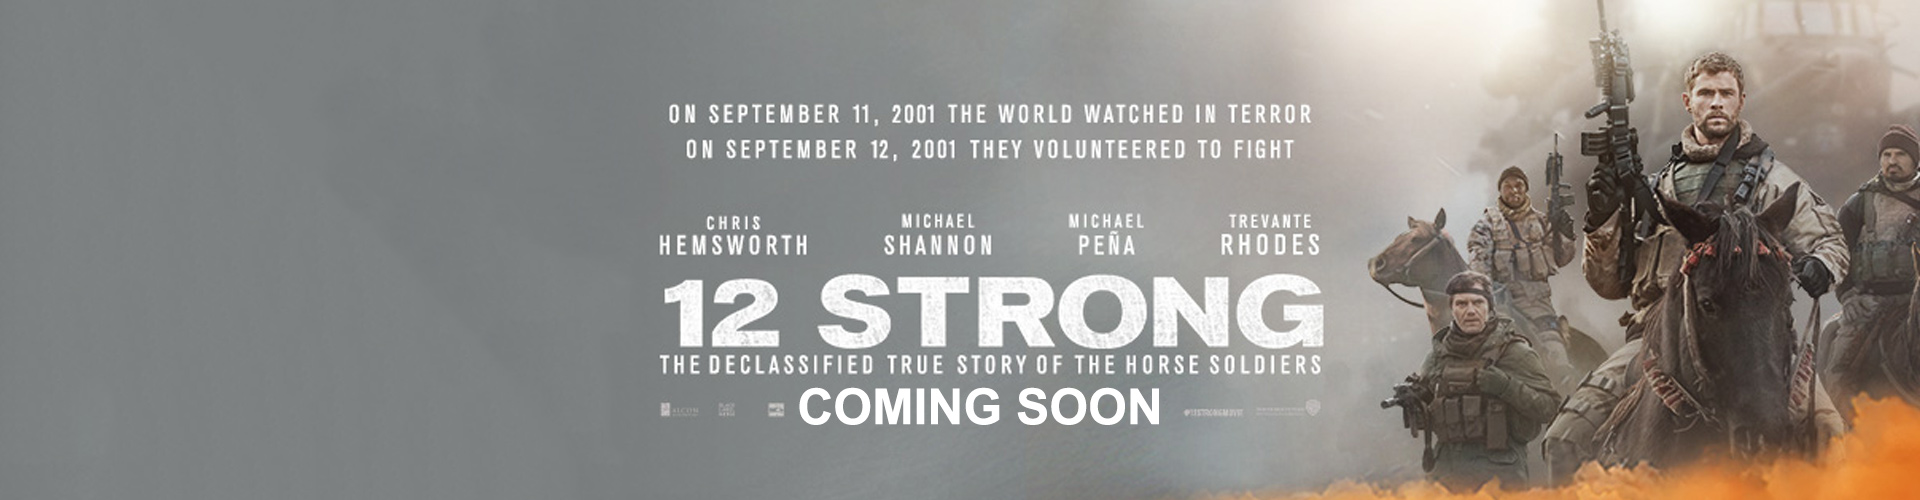 12-strong-coming-soon